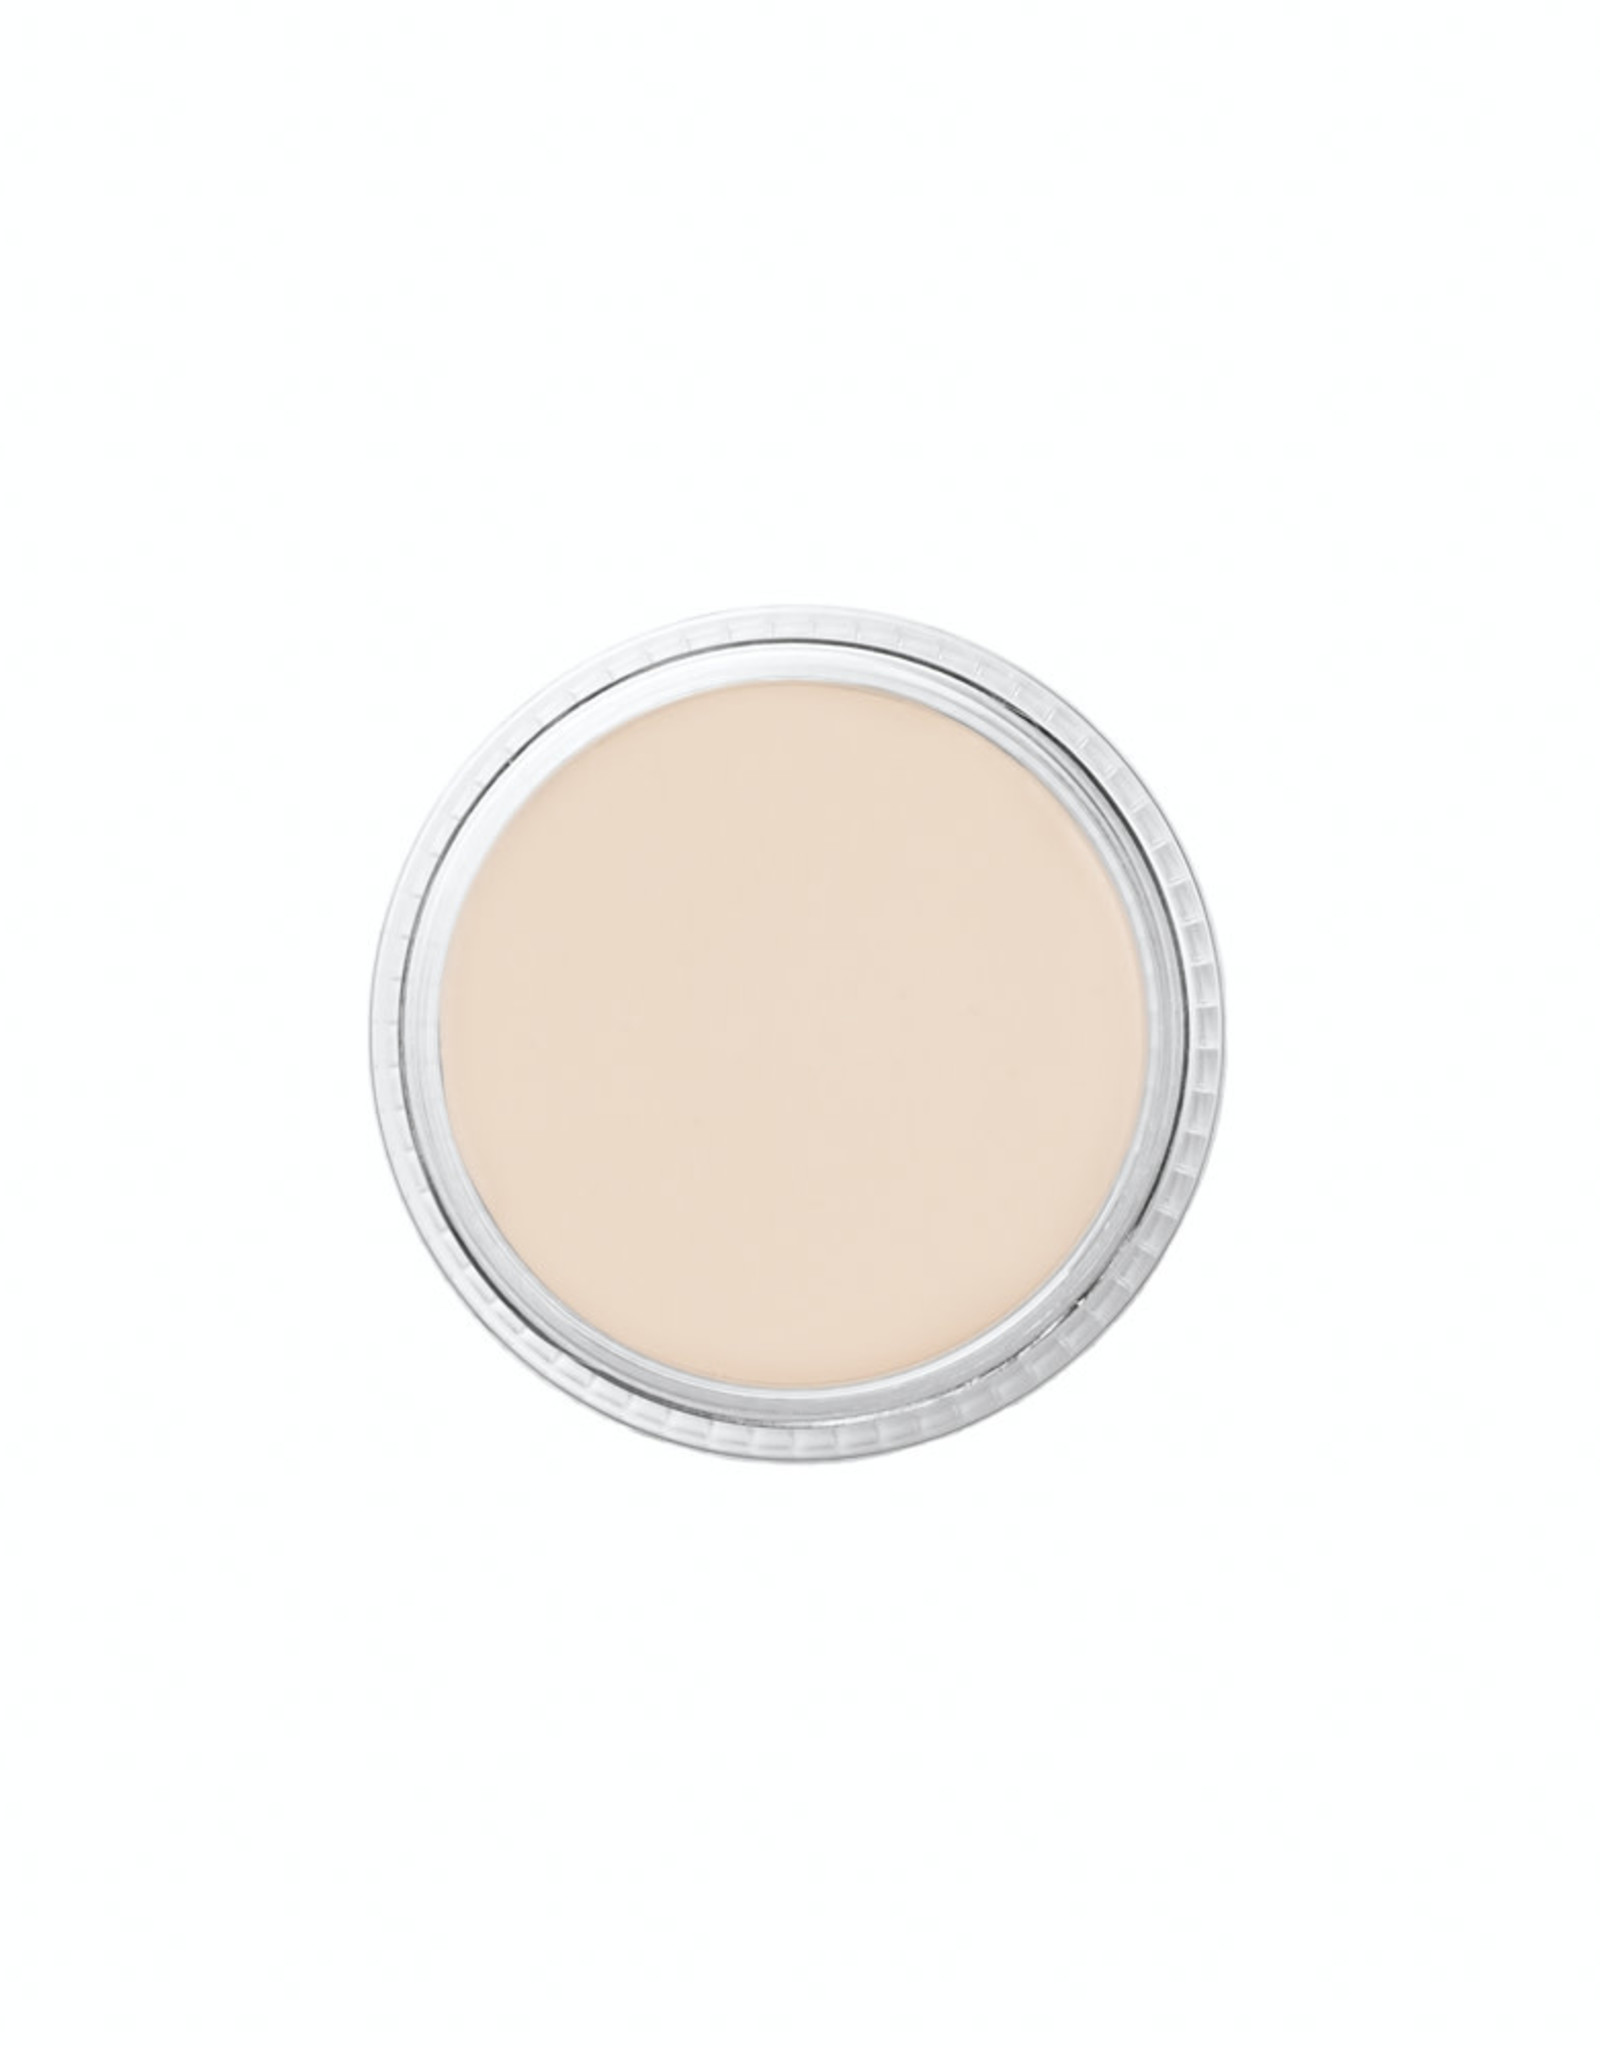 Ben Nye FX CREME COLOR, ULTRALITE,.3 OZ